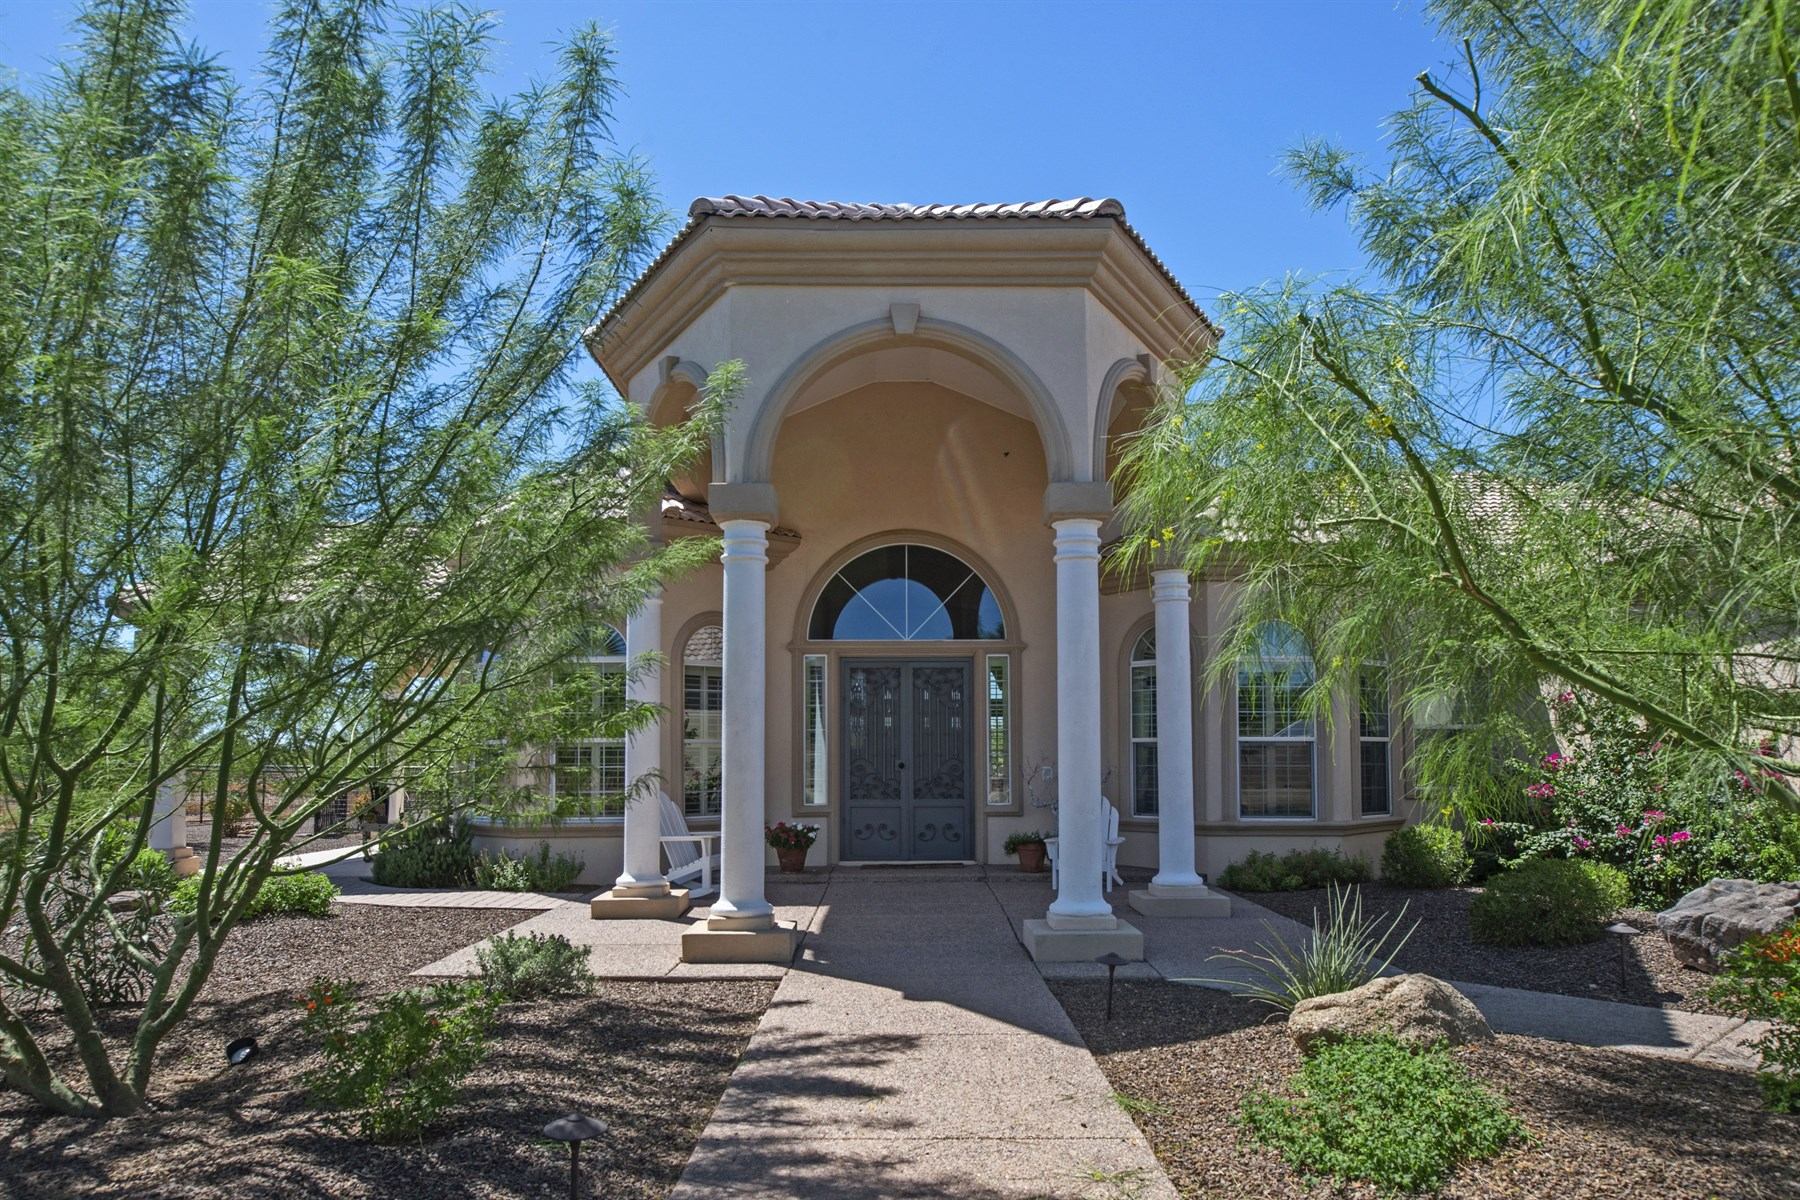 Single Family Home for Sale at Beautiful Custom Home Horse Property on 1.25 Acres in North Phoenix 39125 N 25th Ave Phoenix, Arizona 85086 United States